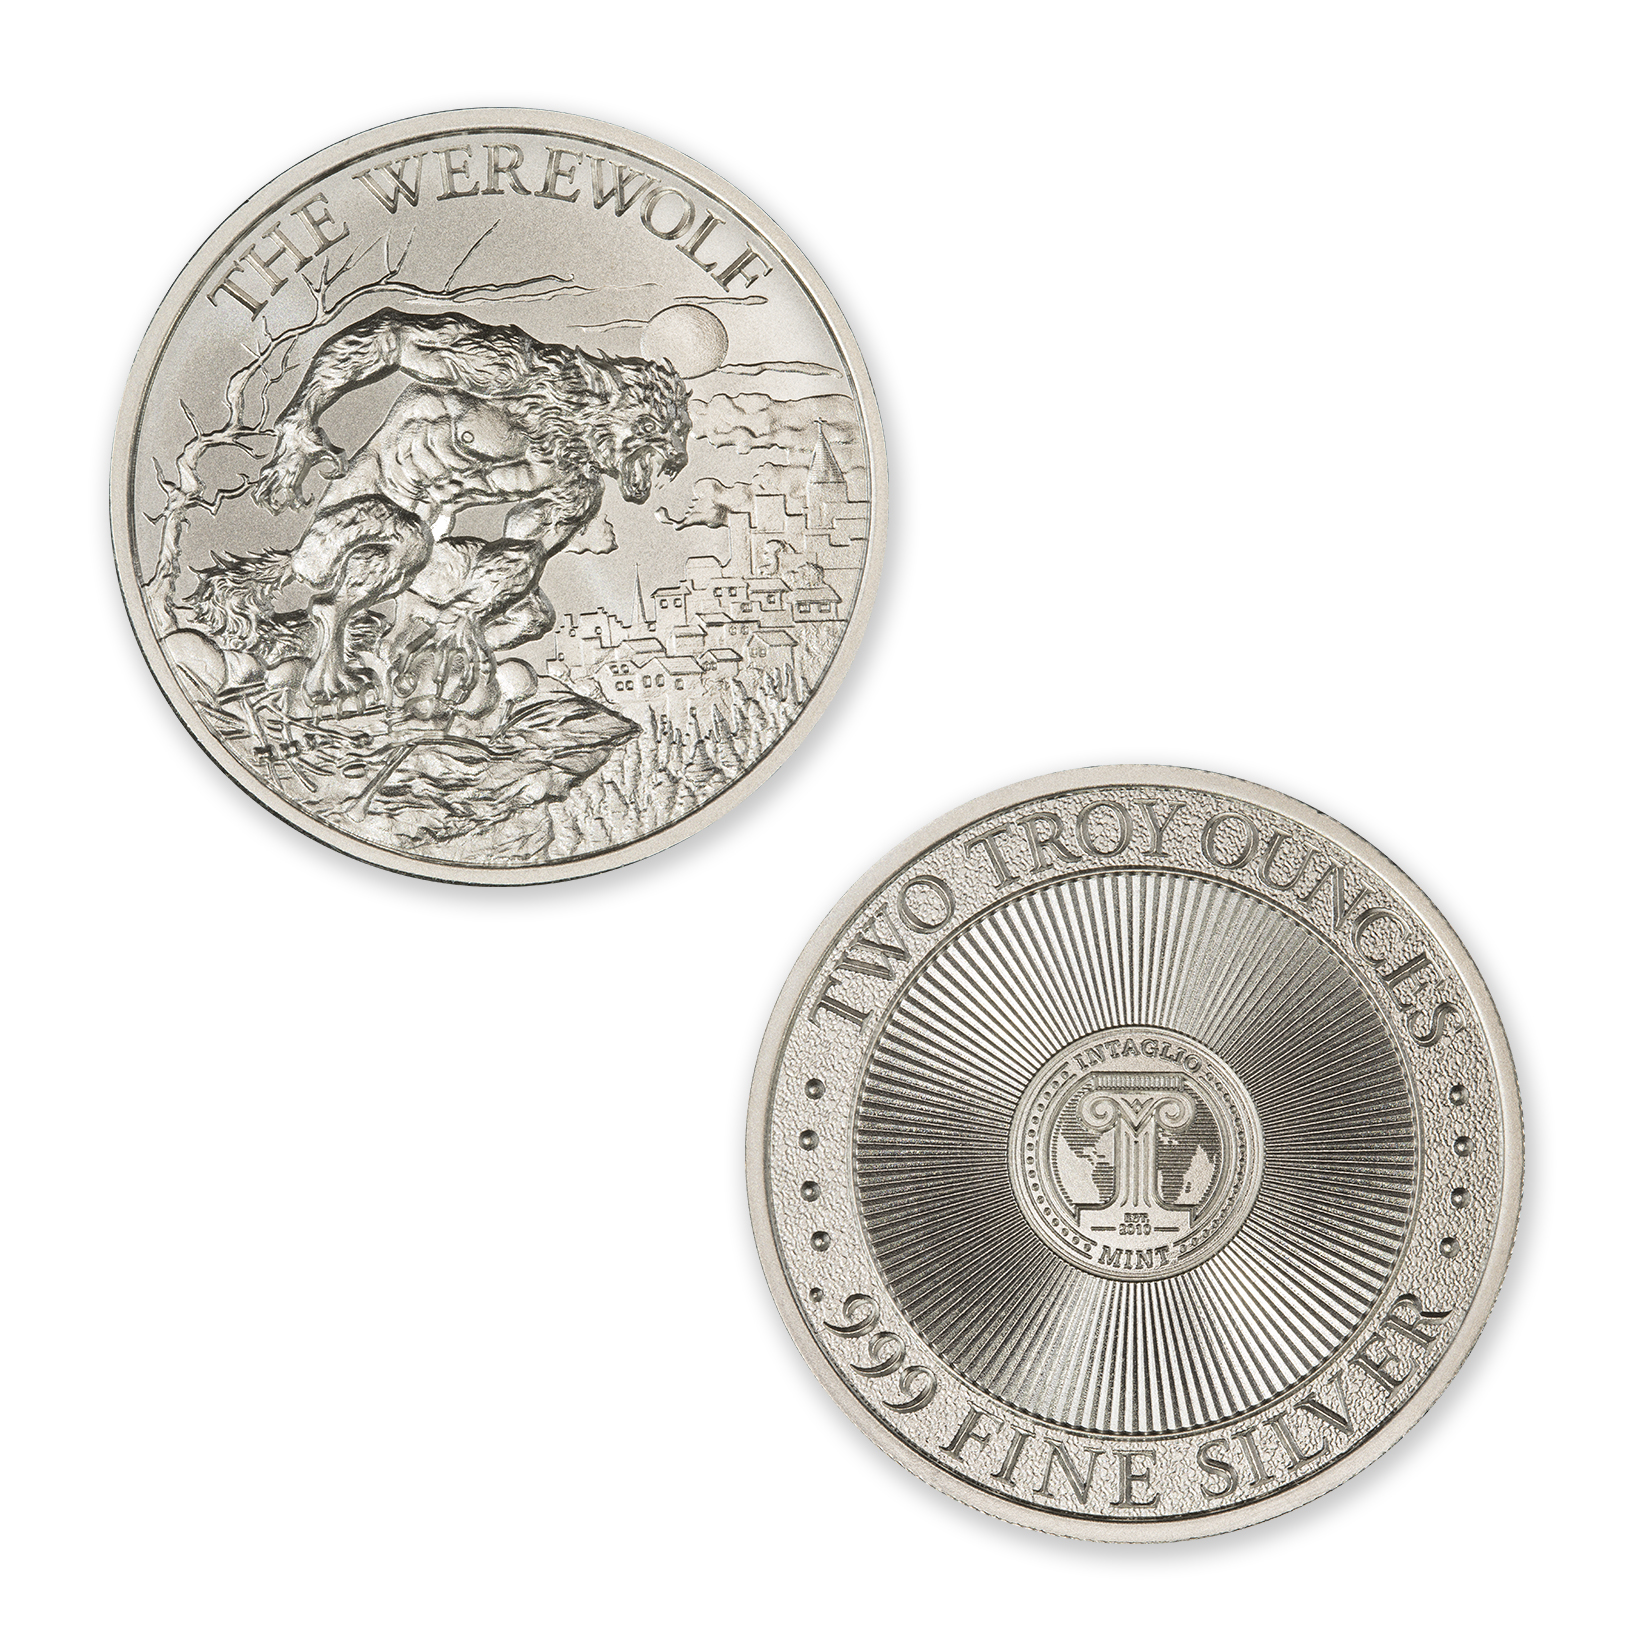 THE WEREWOLF – 2 TROY OUNCE – 39MM